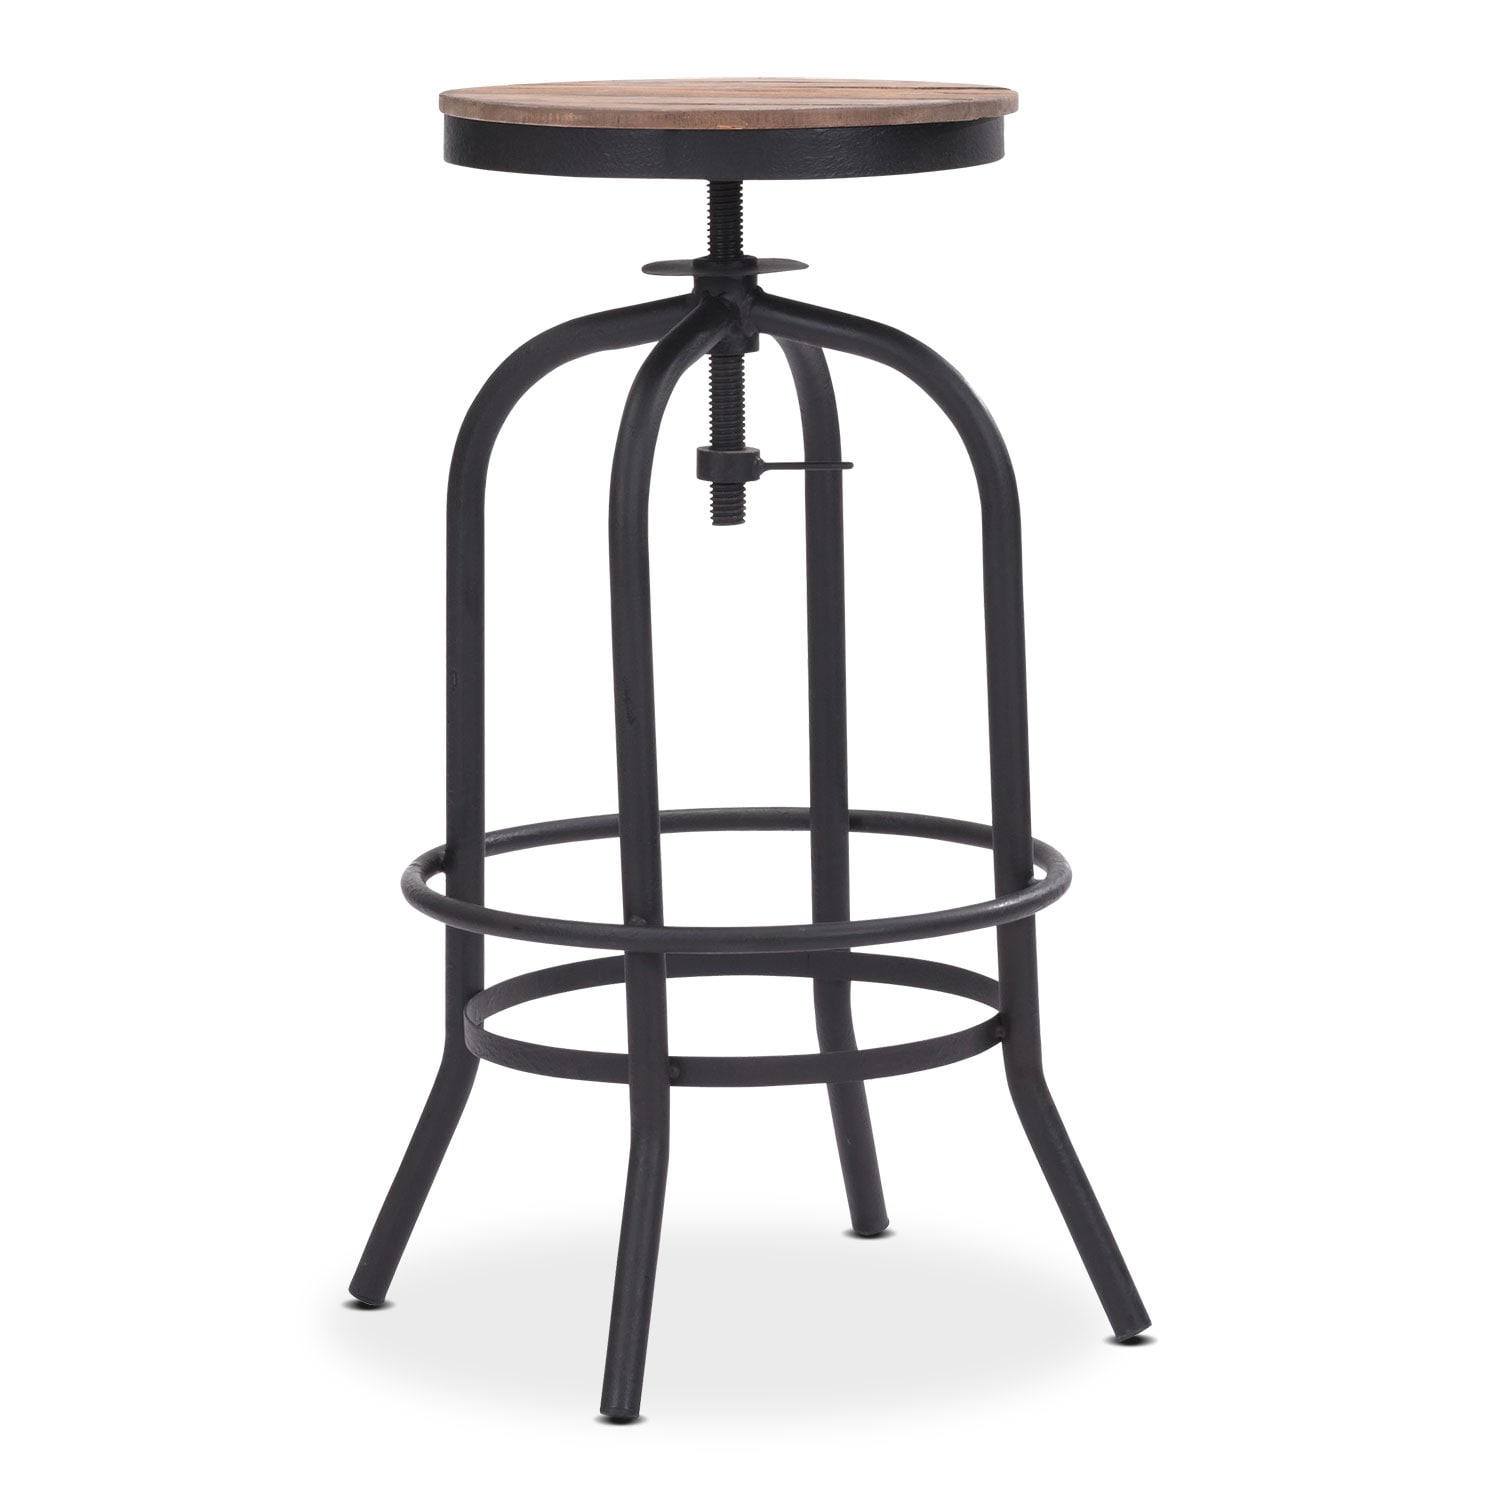 Dining Room Furniture - Elston Adjustable Backless Barstool